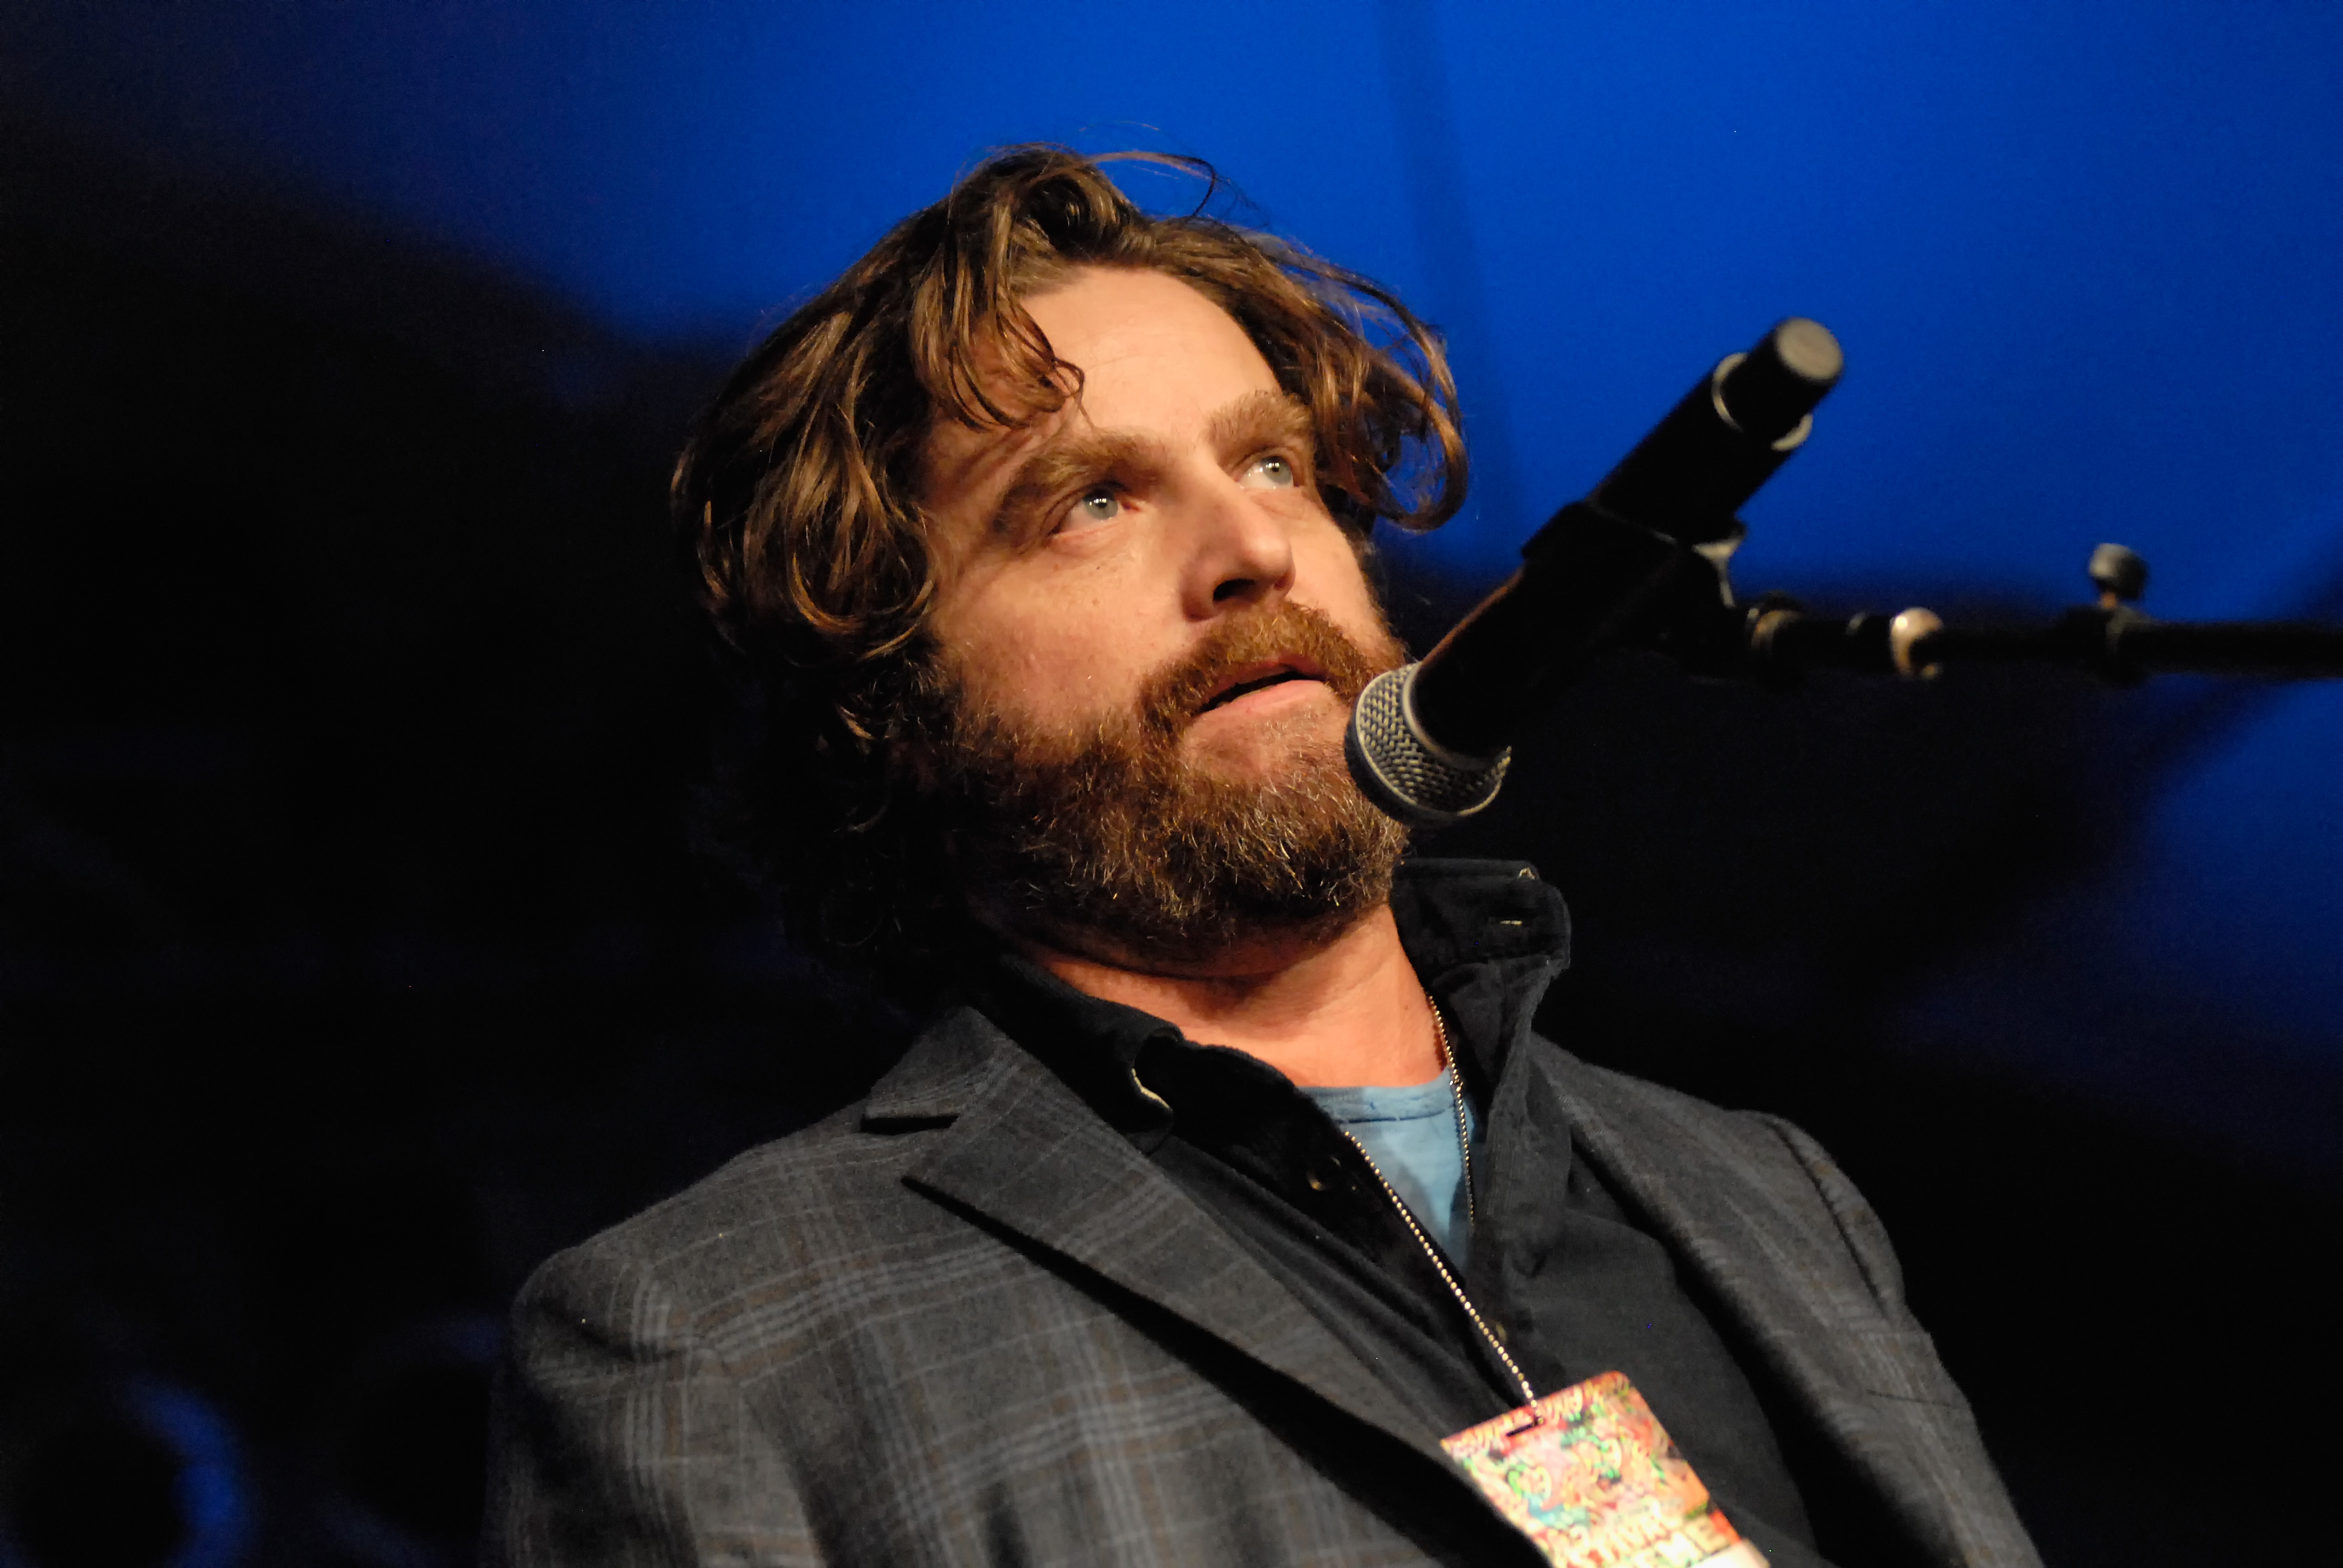 Actor Zach Galifianakis performs at the Festival Supreme comedy and music festival on the Santa Monica Pier on October 19, 2013 in Santa Monica, California.